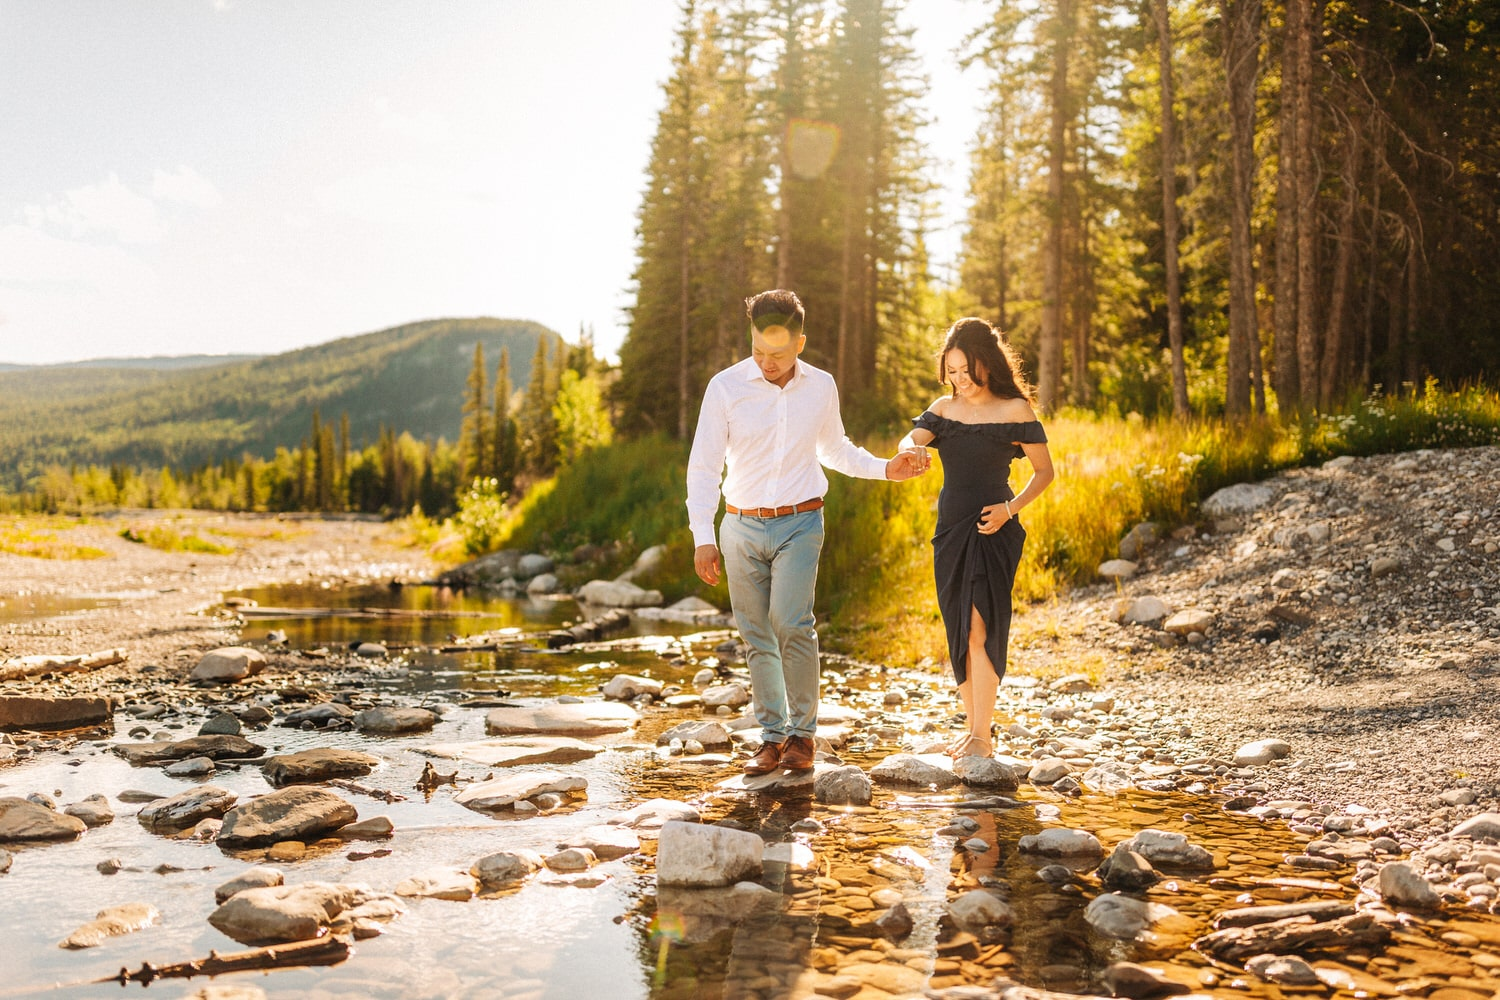 Elbow Falls Engagement Photo of a Couple Walking On the Rocks